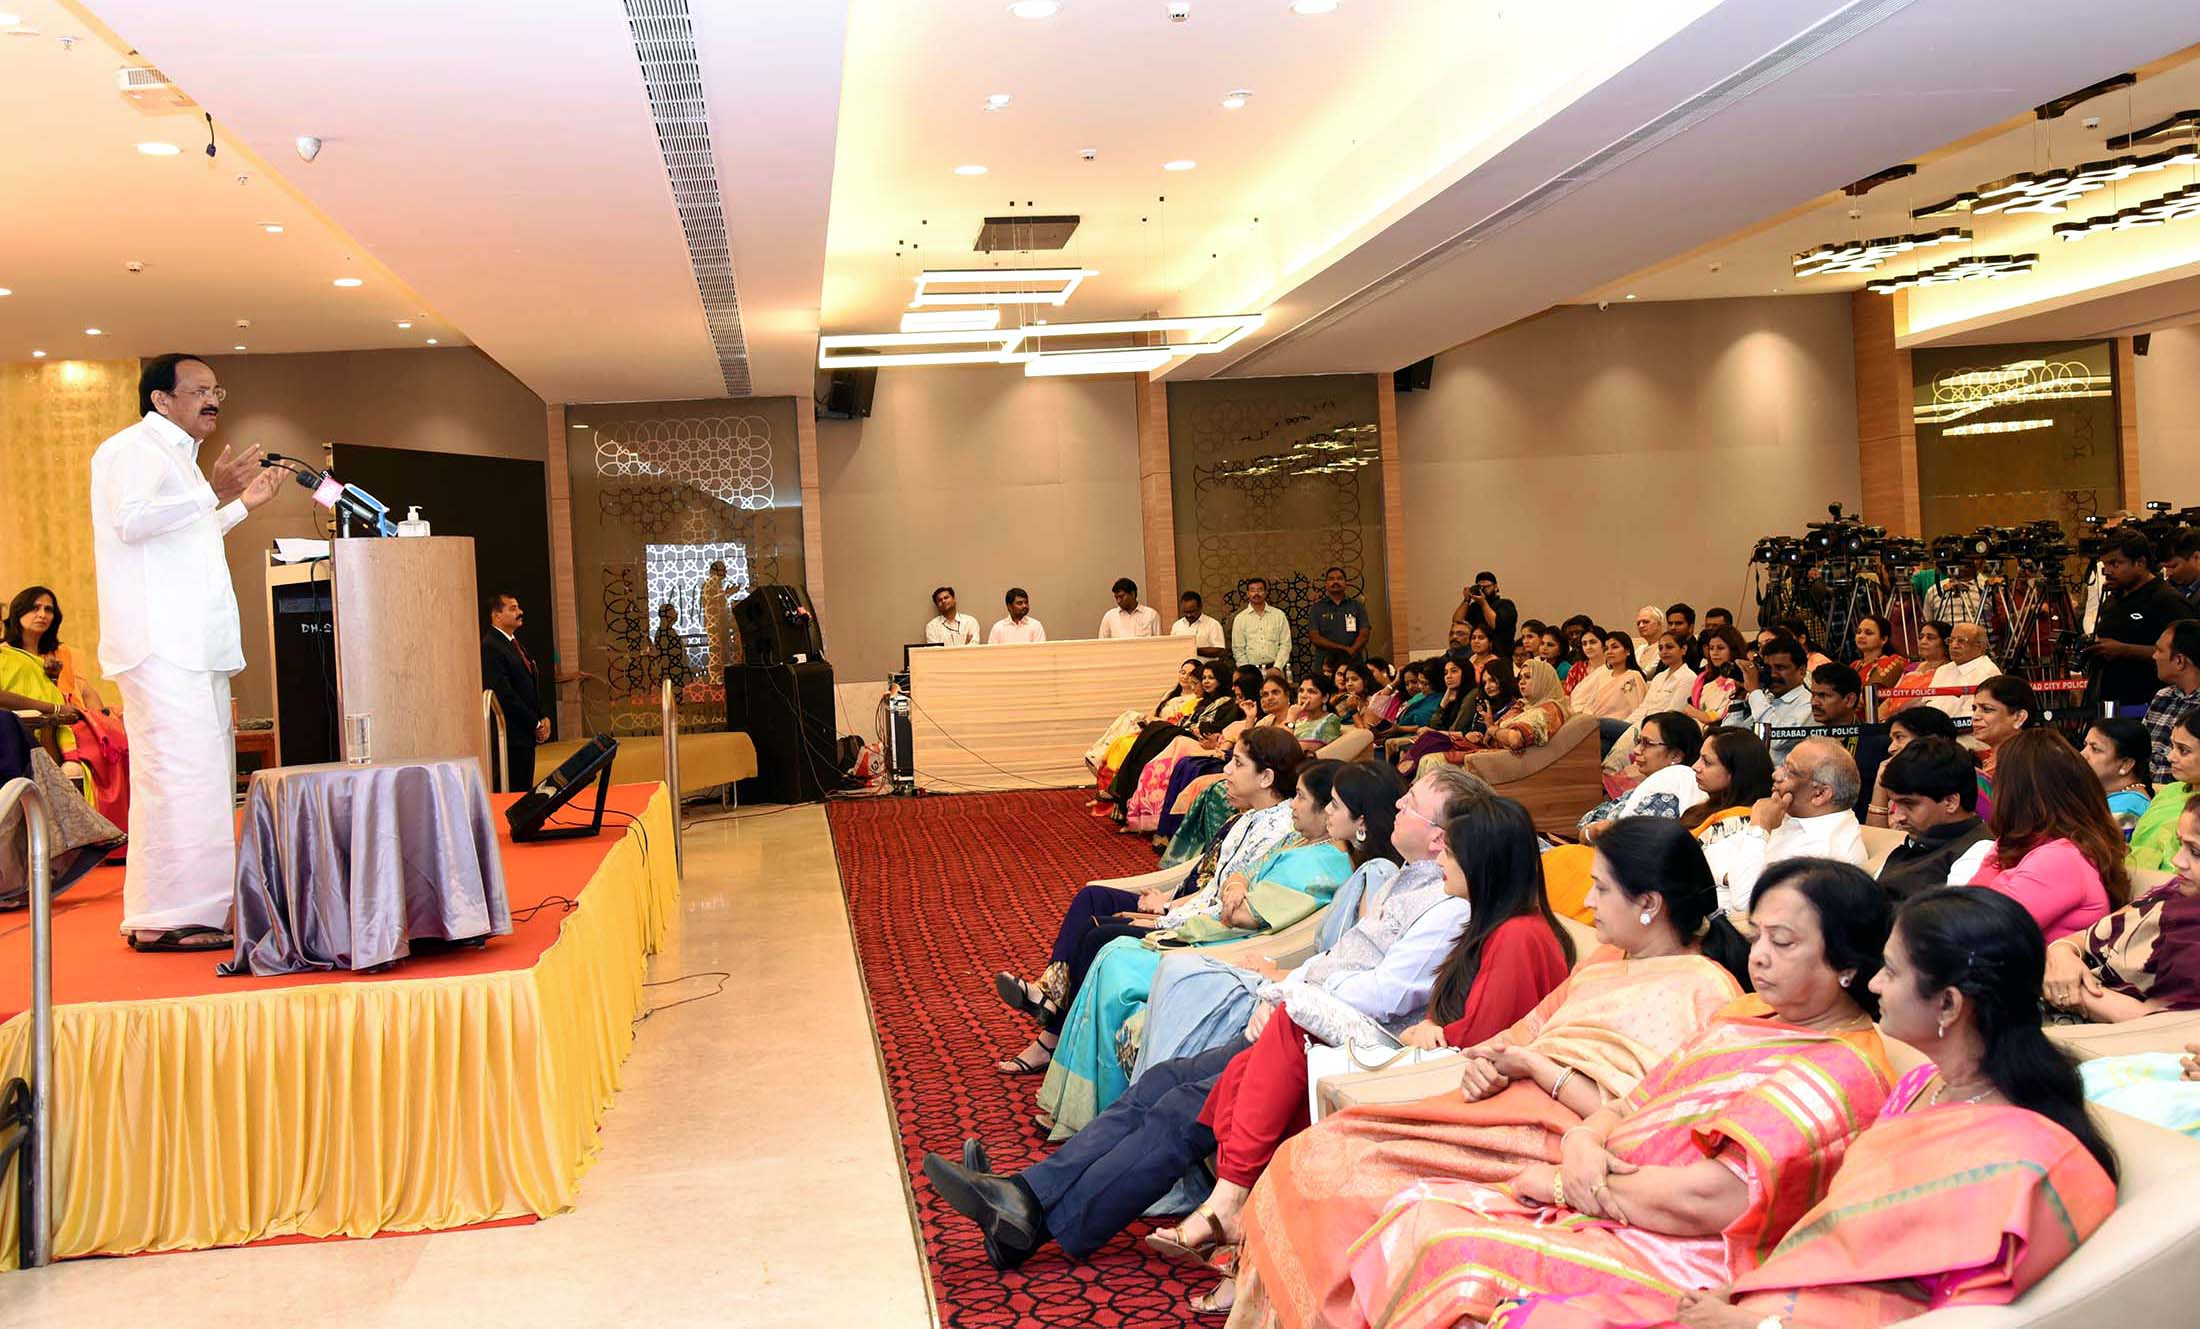 The Vice President, Shri M. Venkiah Naidu addressing the gathering during the inaugural of iWIN (International Women Network) – a portal conceived by Foundation of Futuristic Cities, in Hyderabad, on 08 March, 2020.